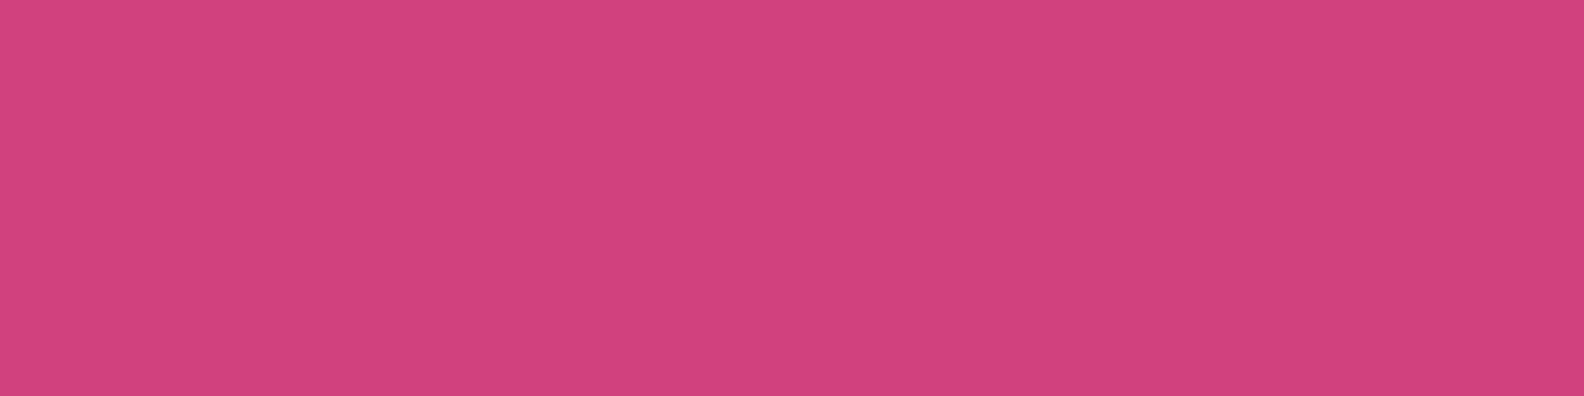 1584x396 Magenta Pantone Solid Color Background